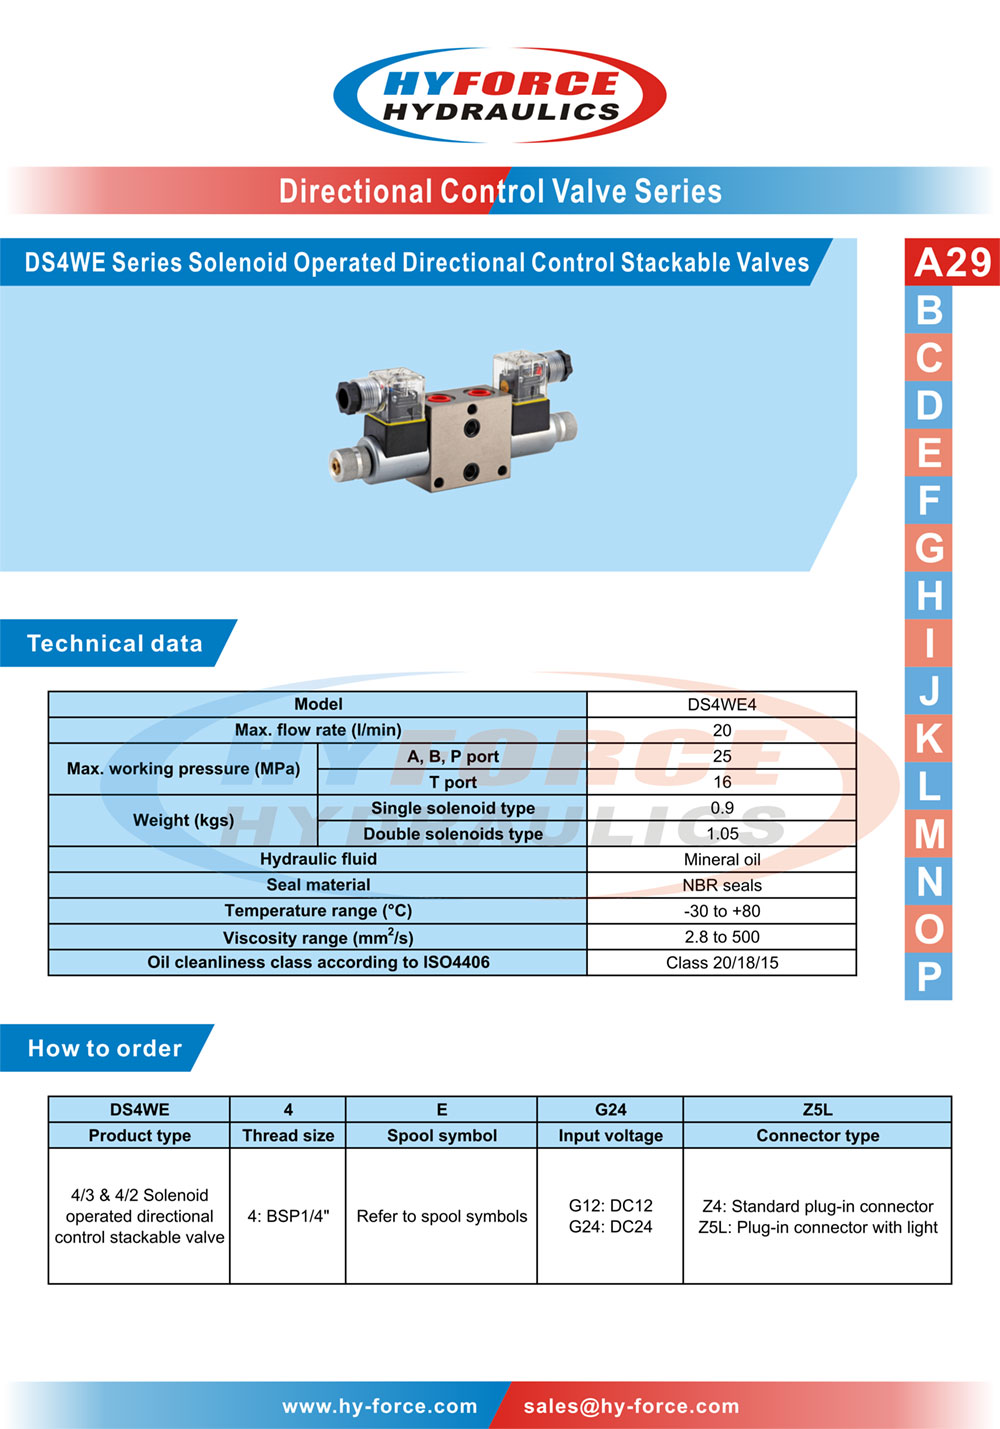 Ds4we series solenoid operated directional control stackable technical data how to order spool symbols dimensions biocorpaavc Choice Image